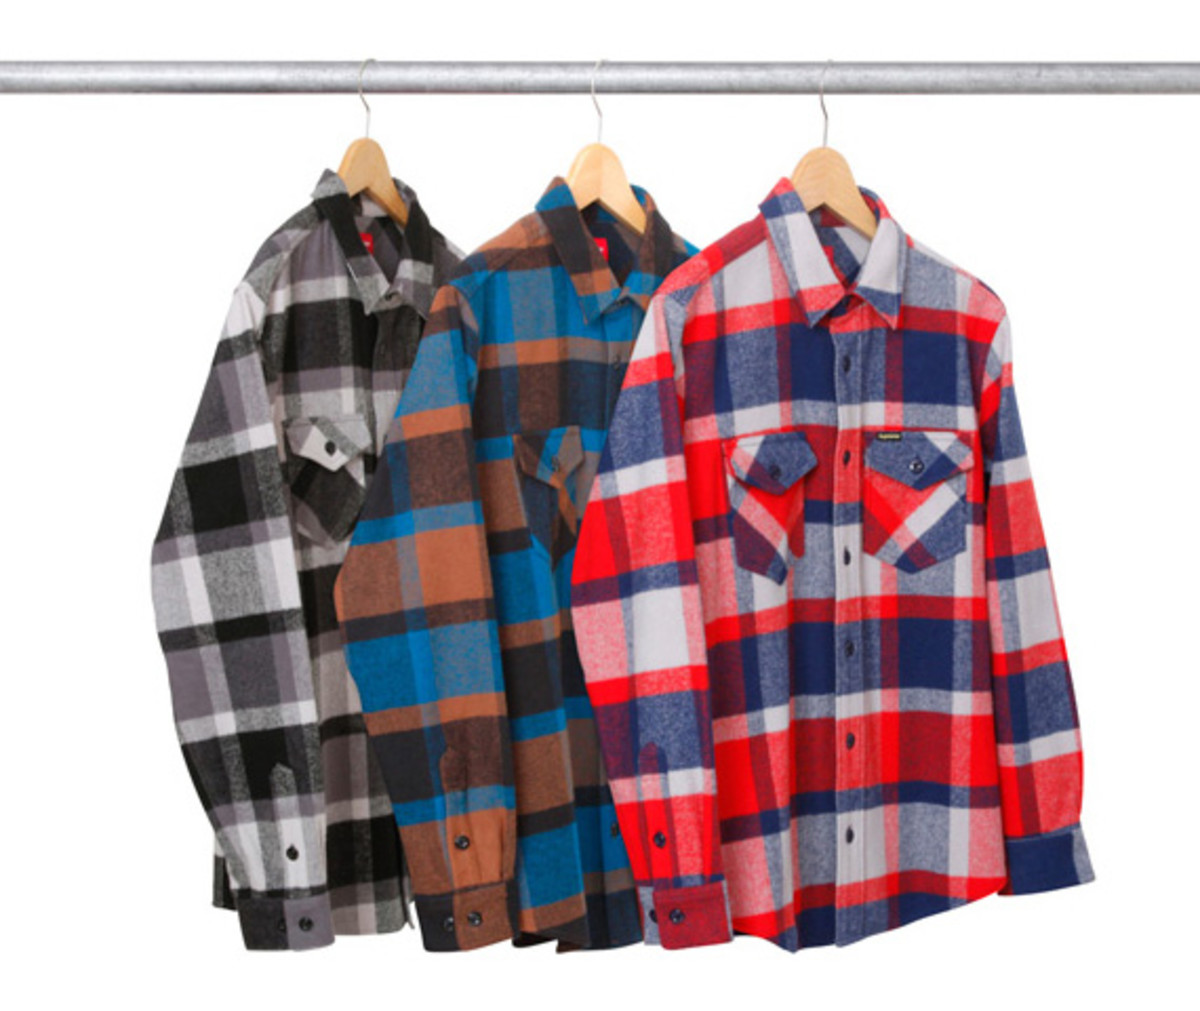 supreme_fw10_collection_apparel_076